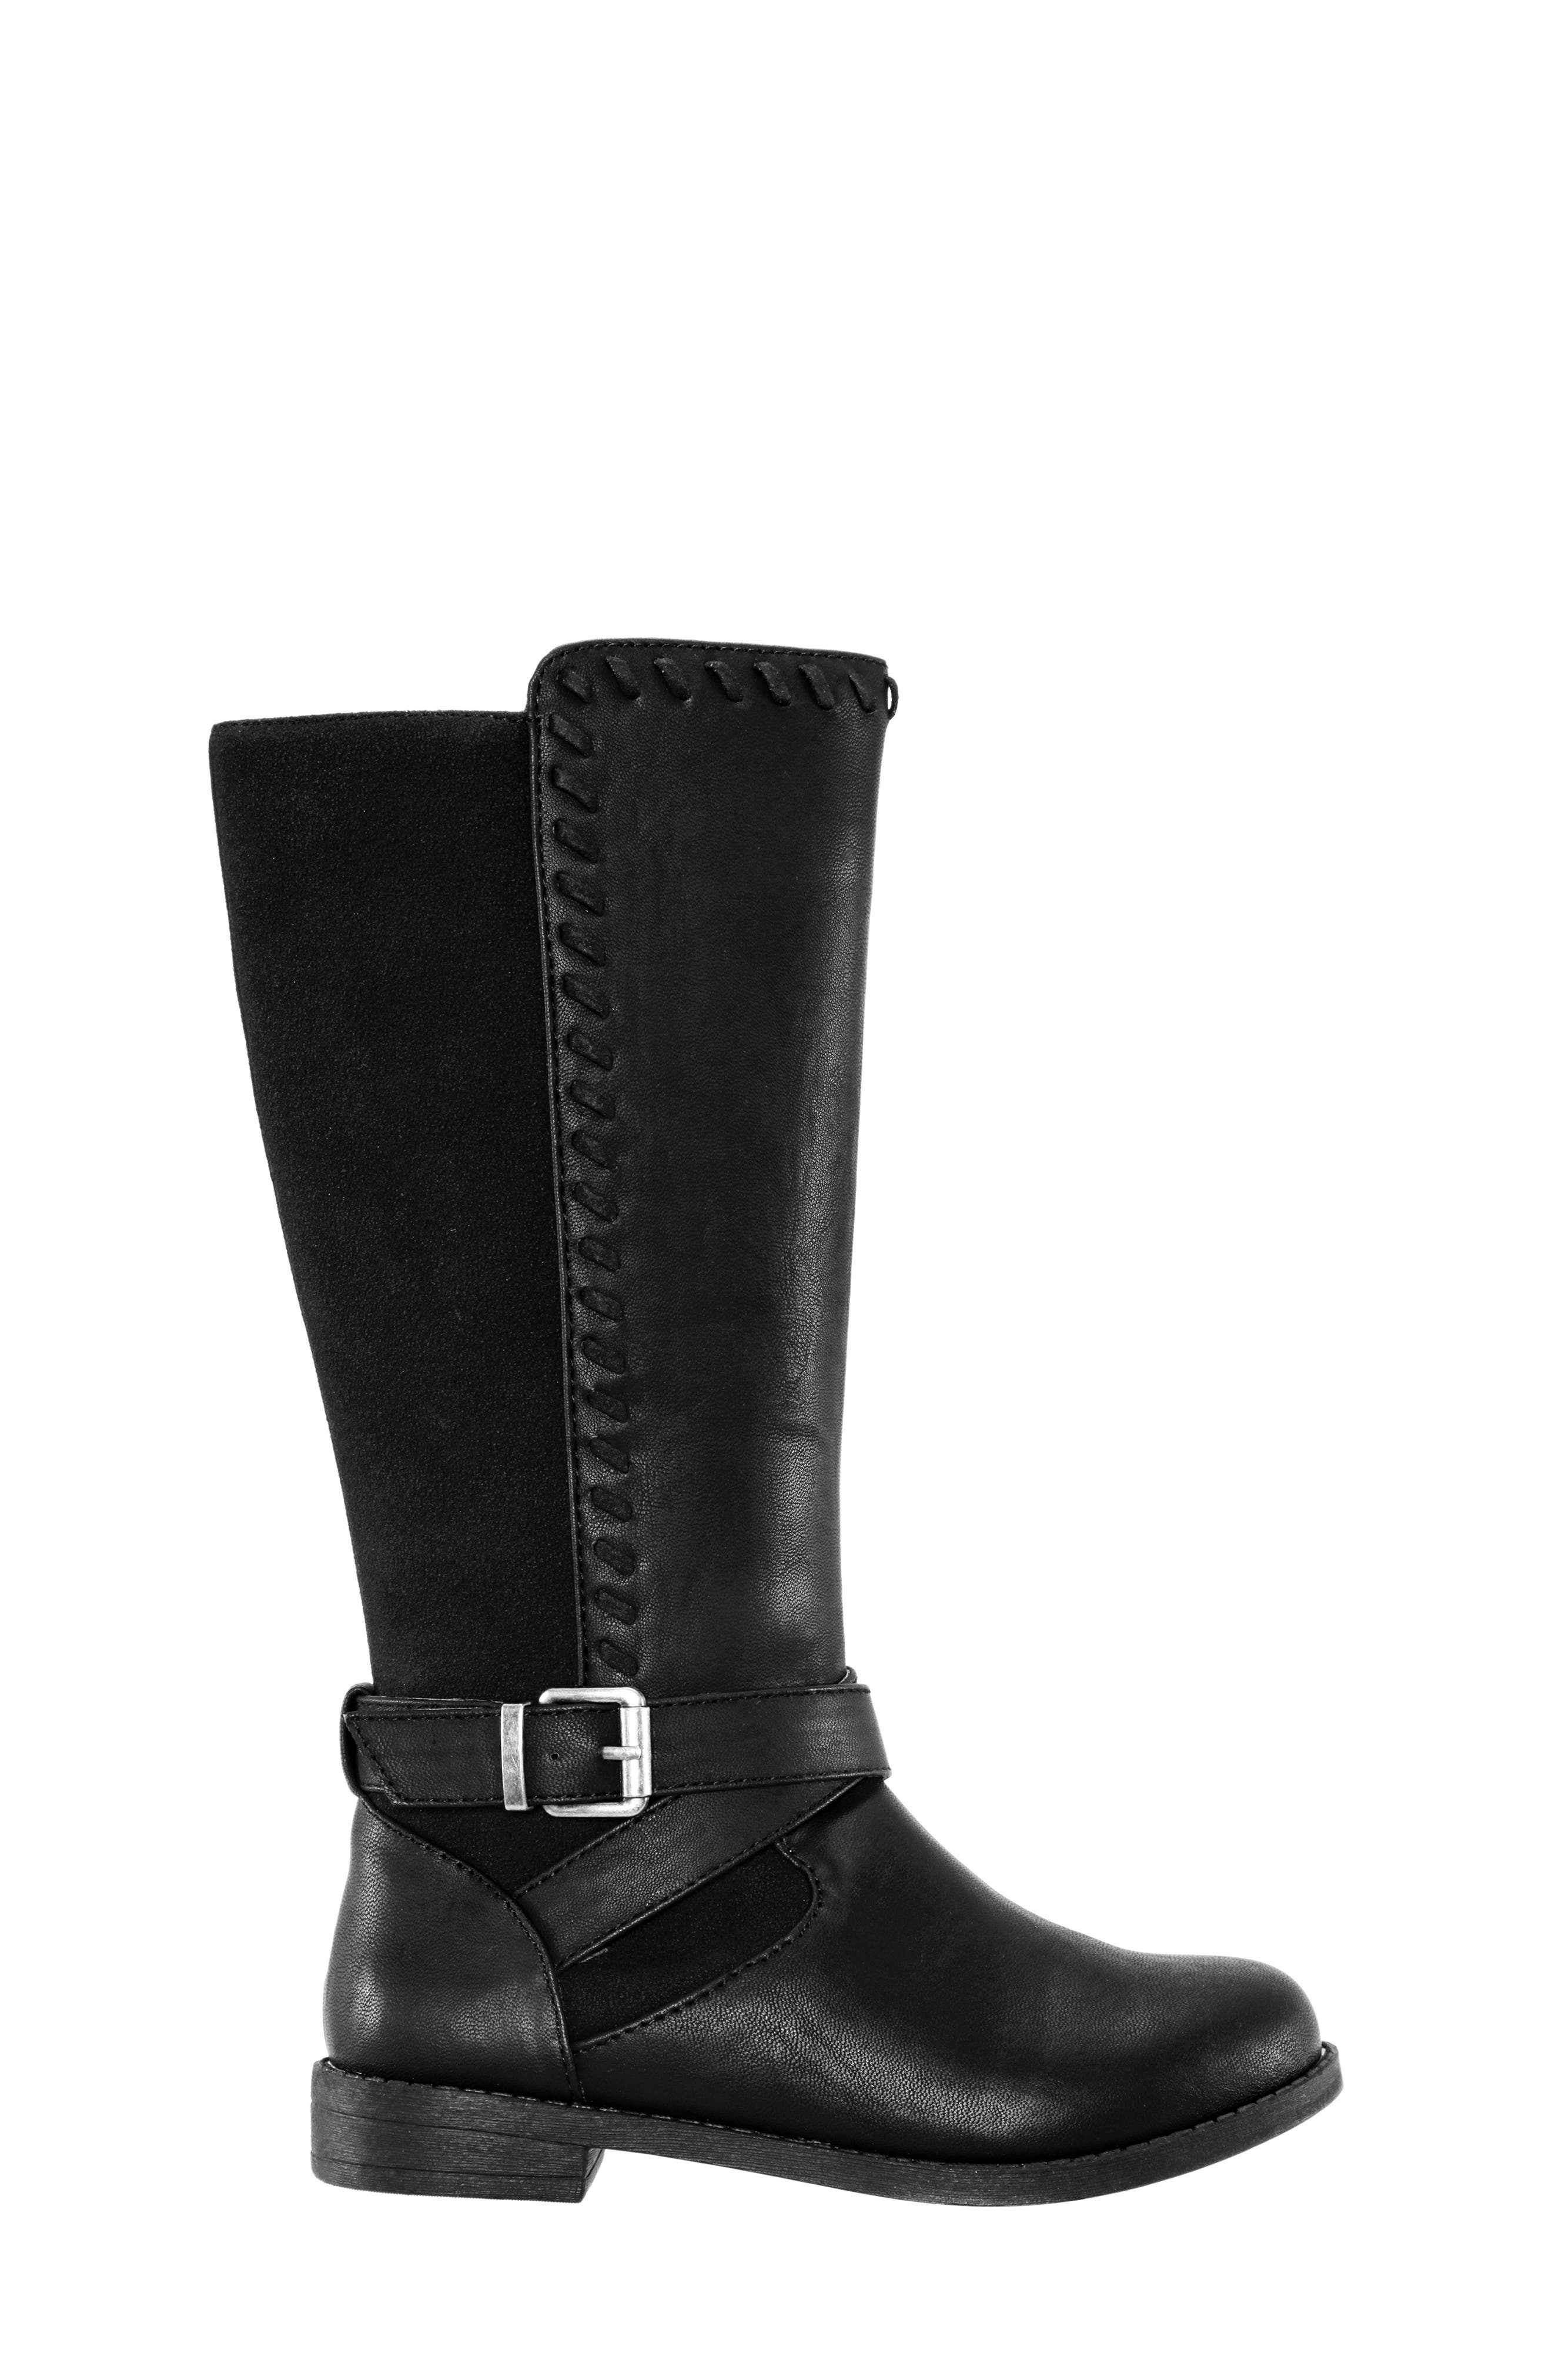 Jeanie Riding Boot,                             Alternate thumbnail 3, color,                             003